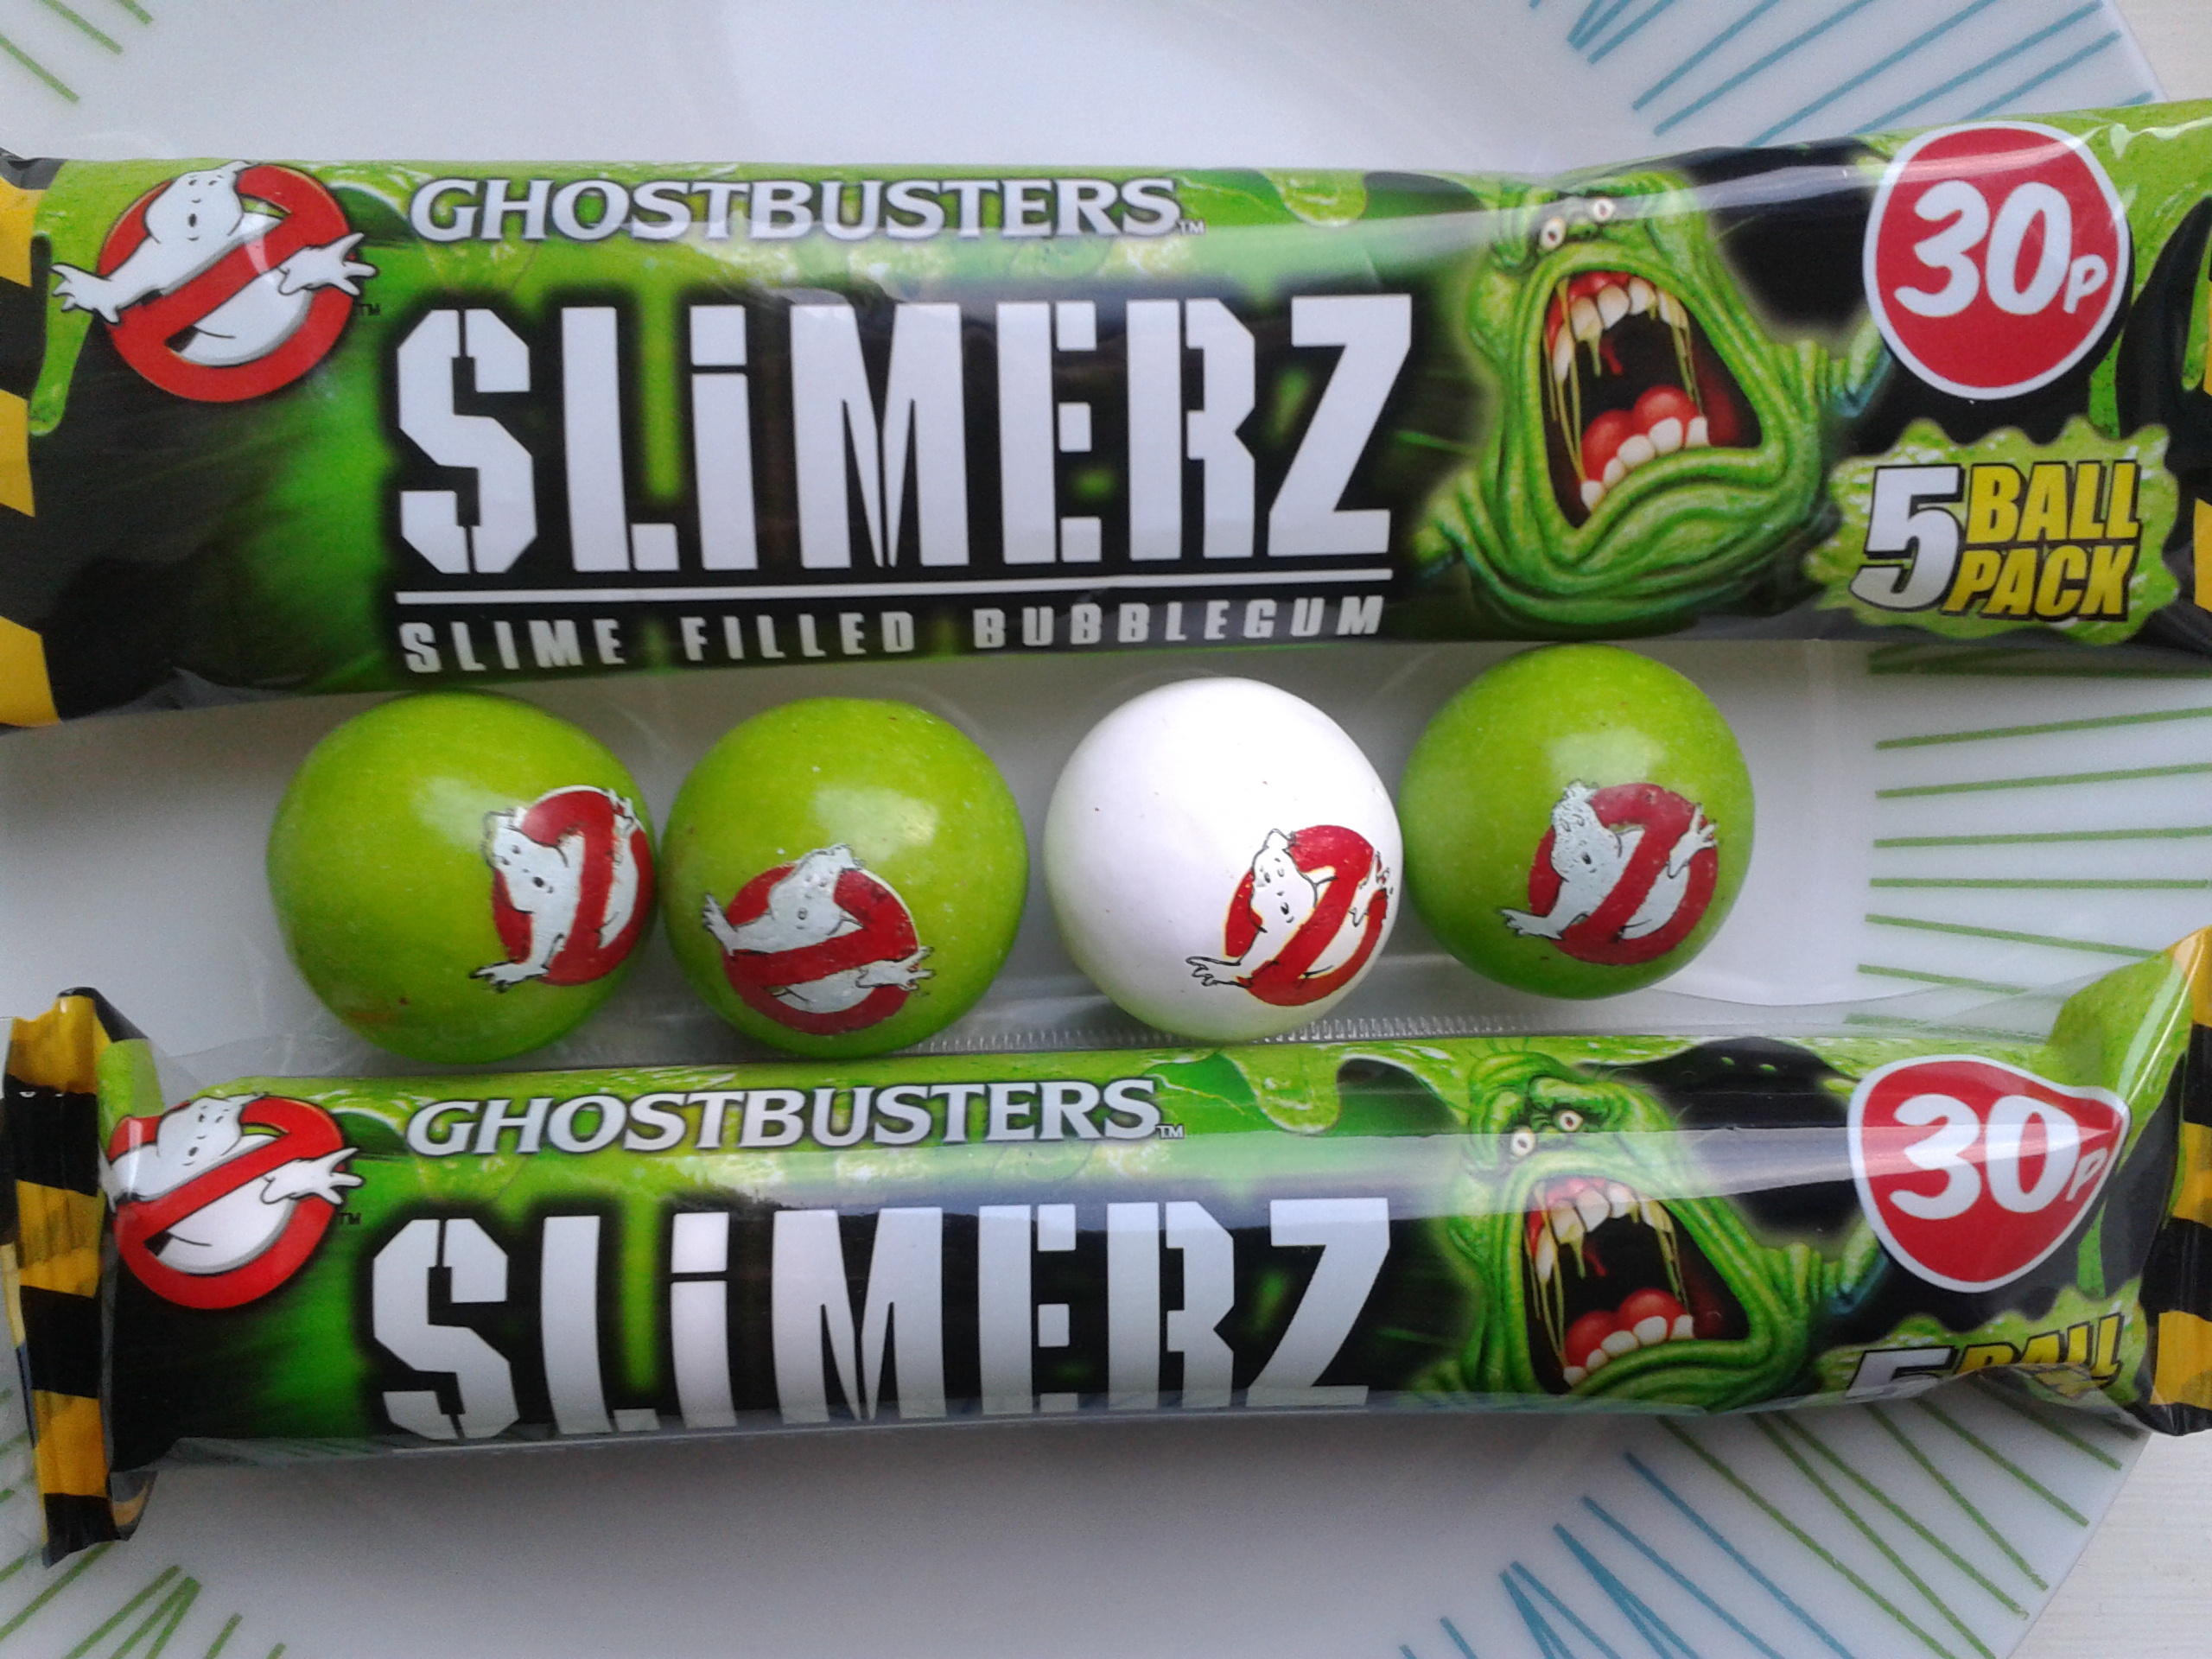 Ghostbusters Slimerz Bubblegum Pack Review